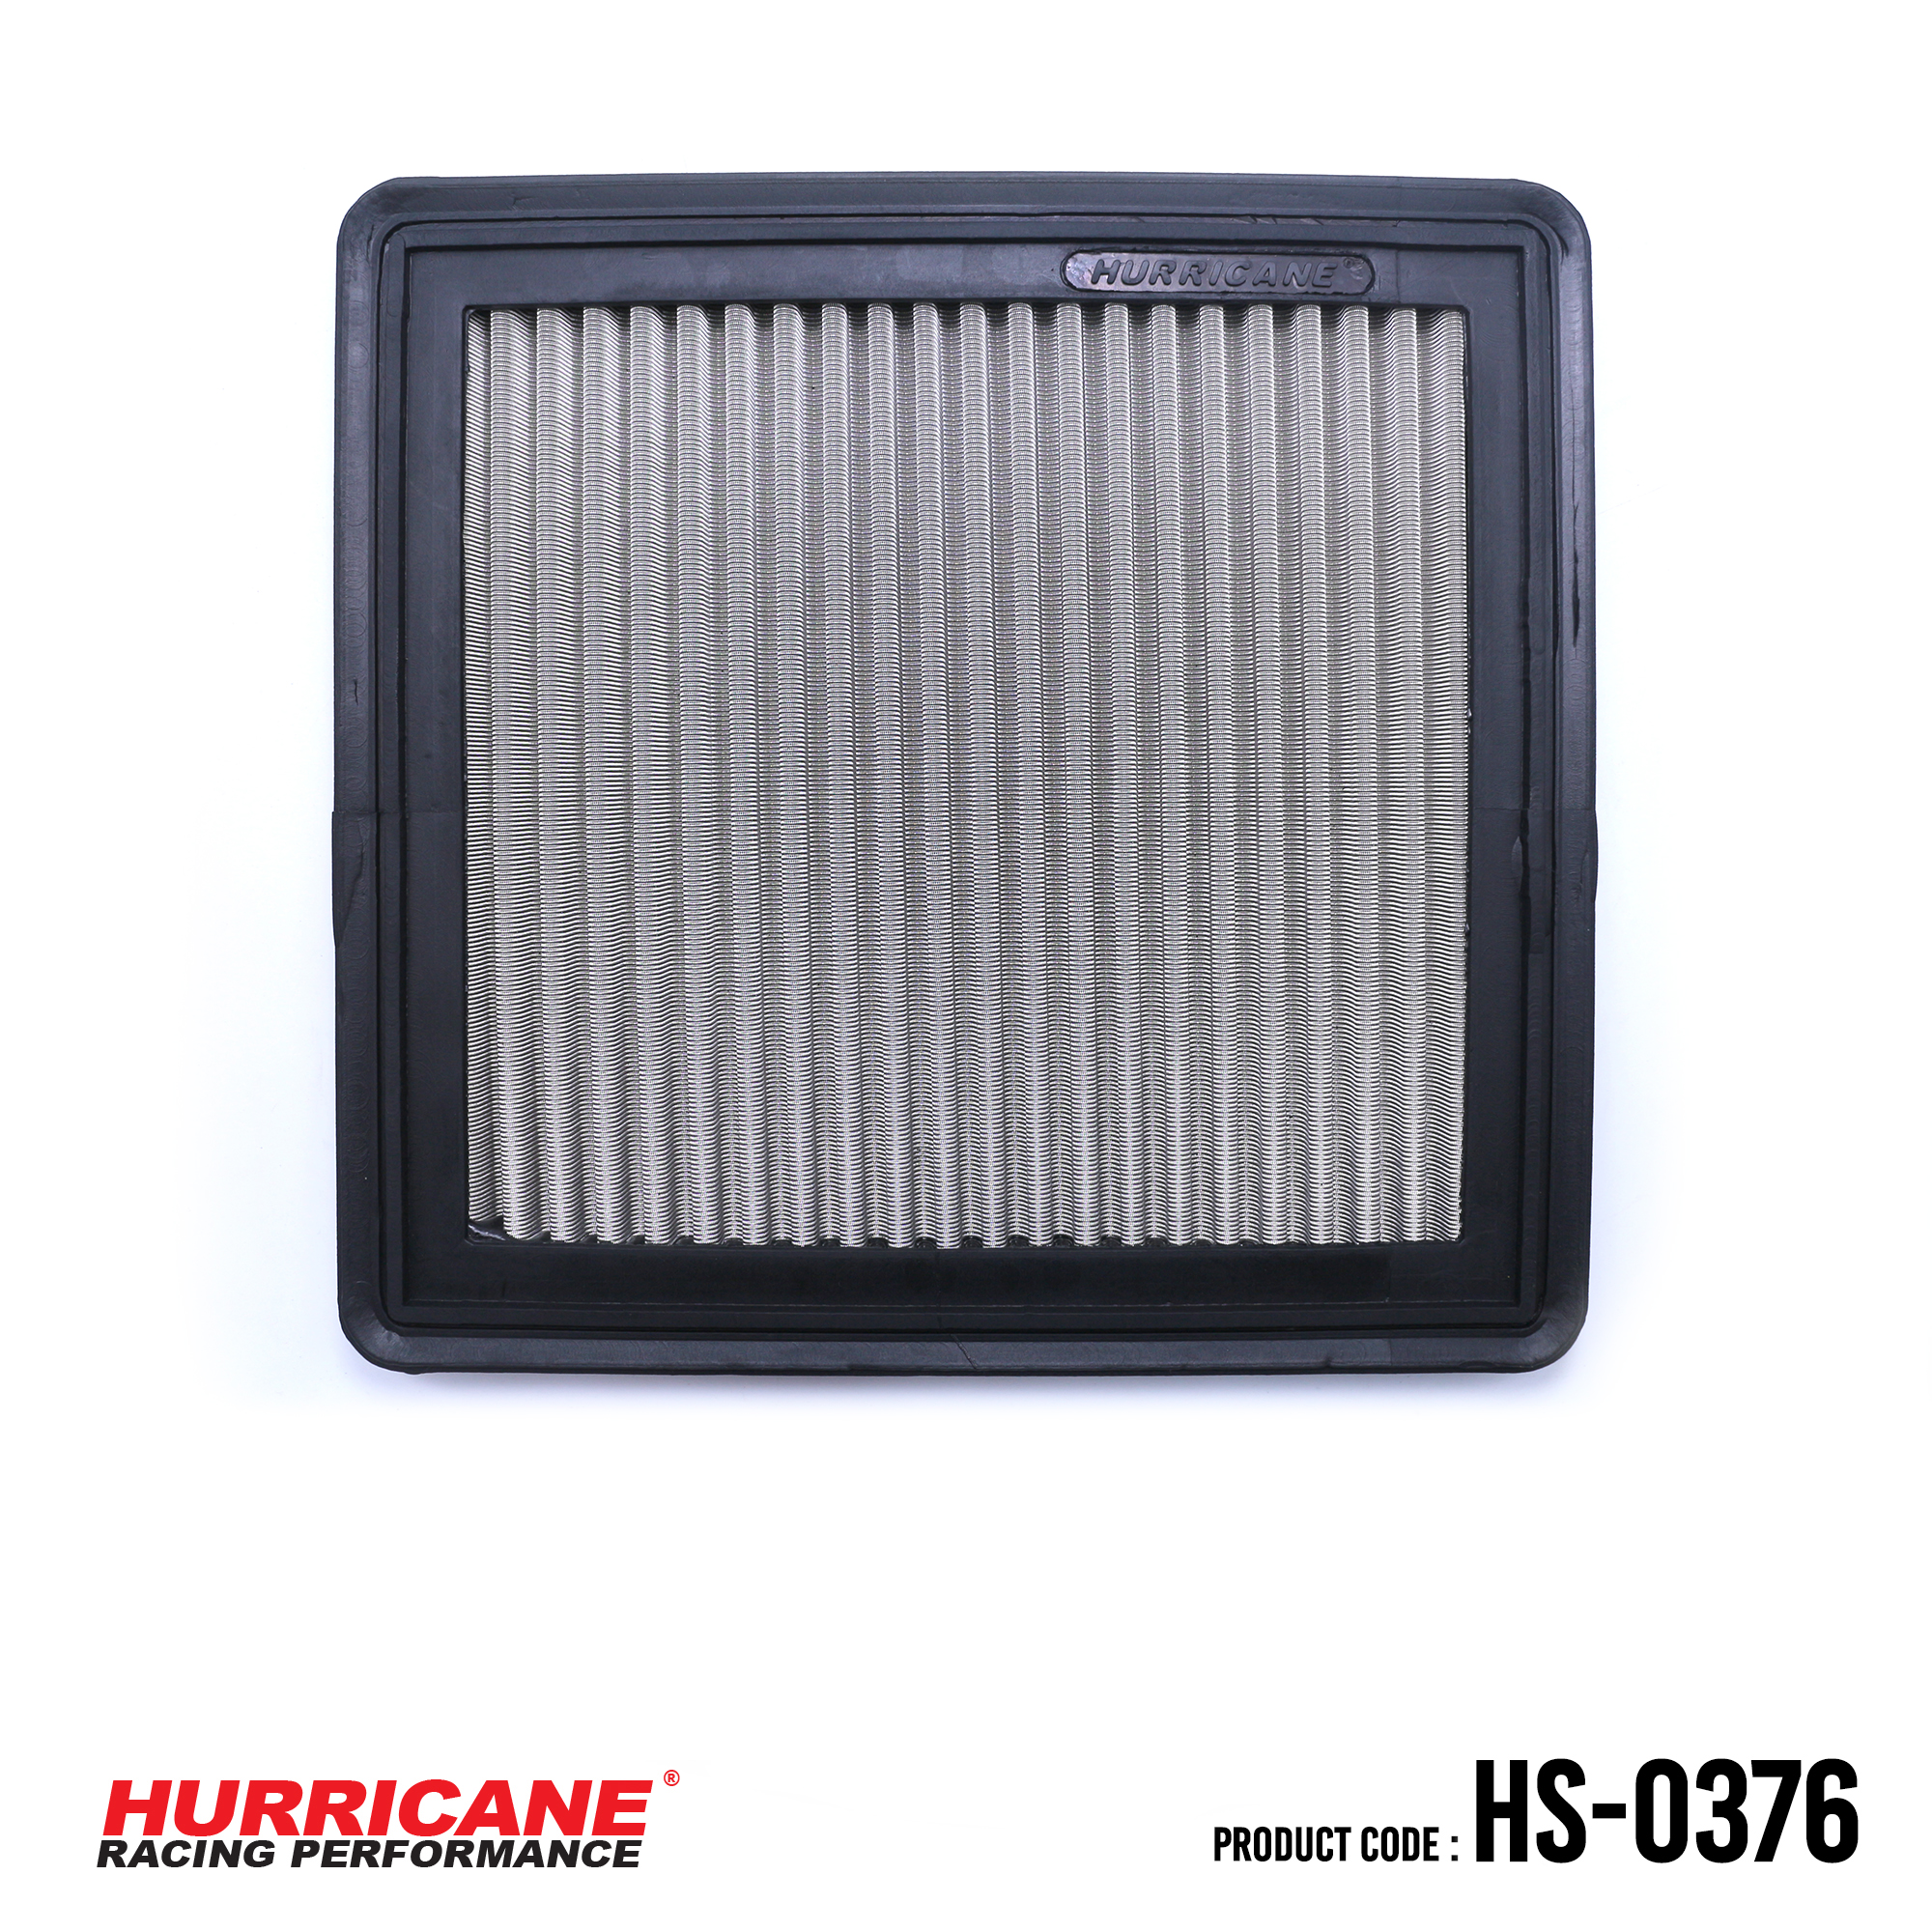 HURRICANE STAINLESS STEEL AIR FILTER FOR HS-0376 Mazda